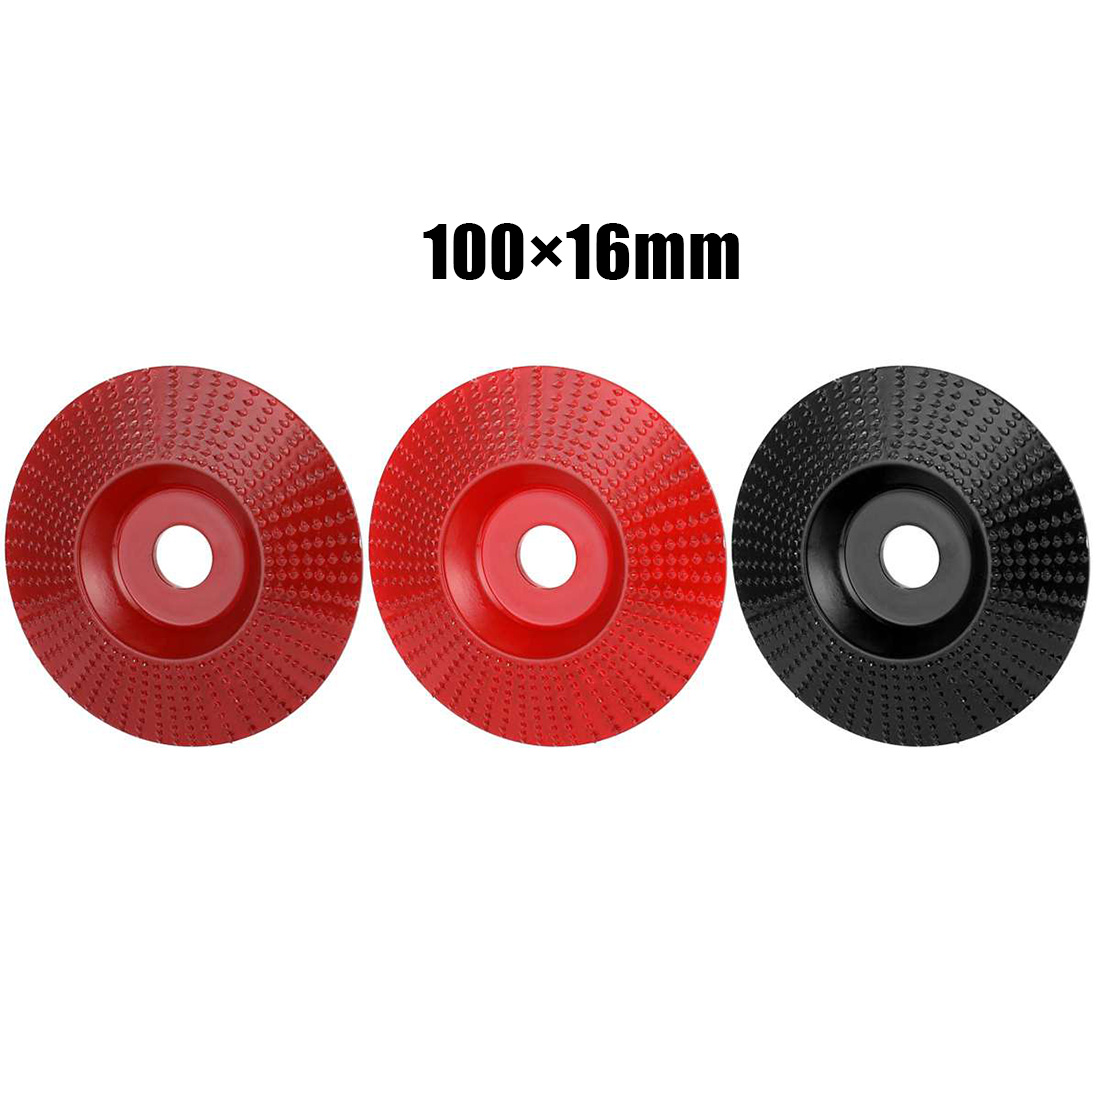 3PCS Flat / Arc / Bevel Grinding Wheel Angle Grinder Disc Wood Carving Tool Grinding Wheel Saw Circular Cutting Disc Dremel Rot